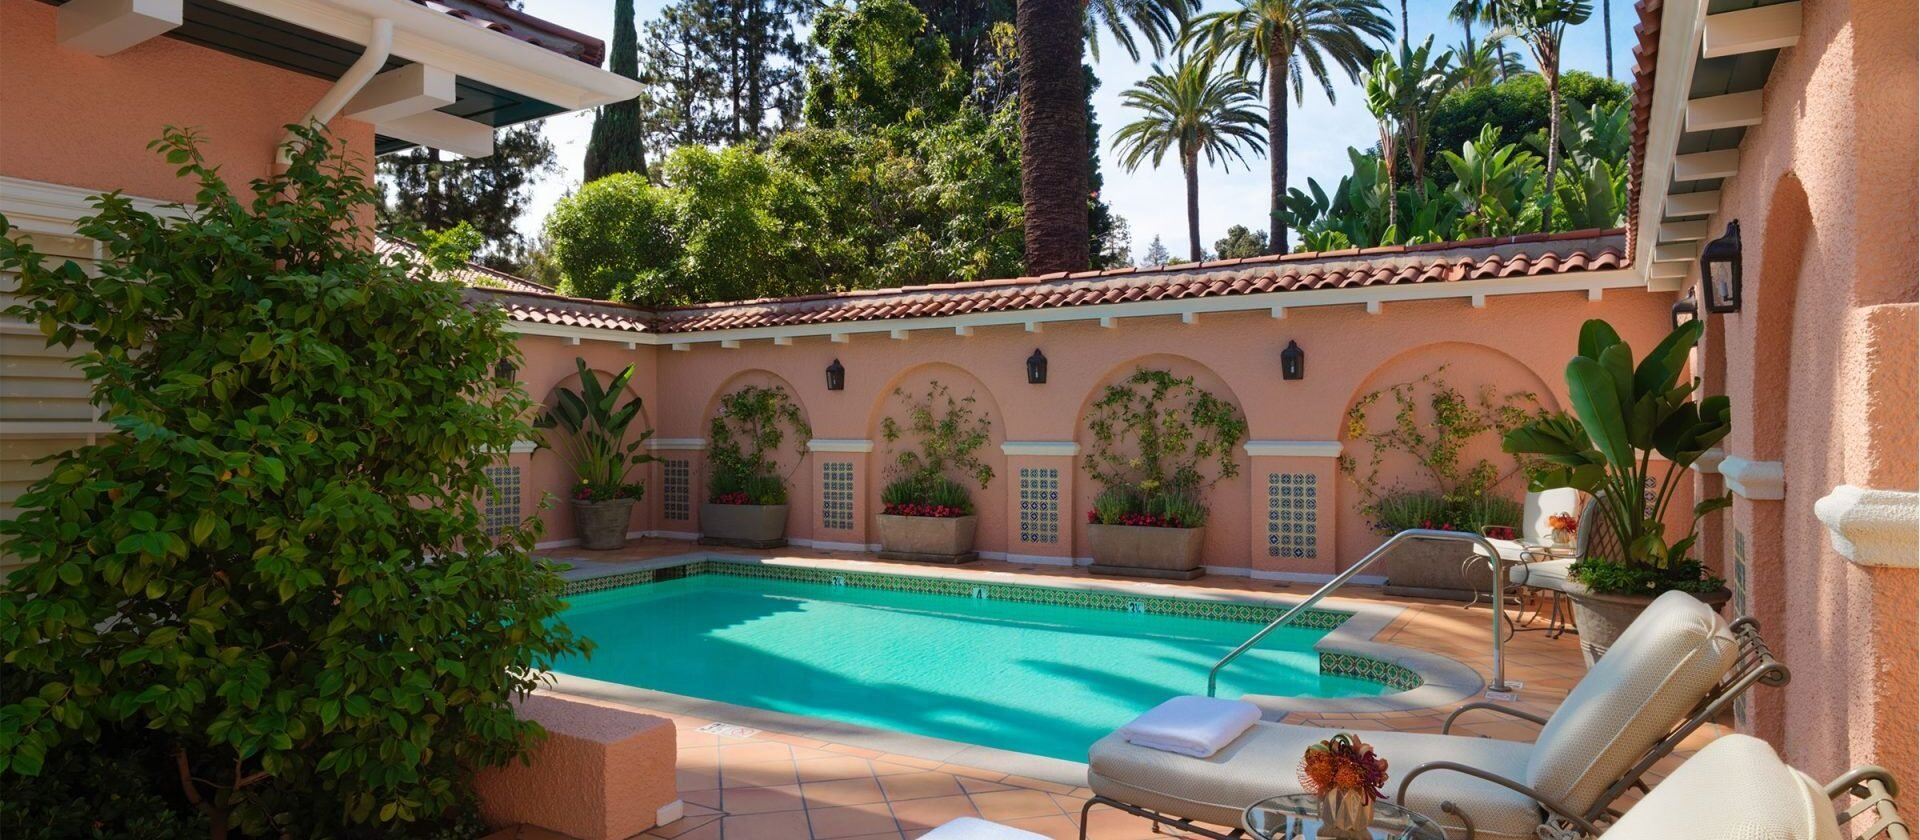 Beverly Hills Hotel Pool 2018 World S Best Hotels